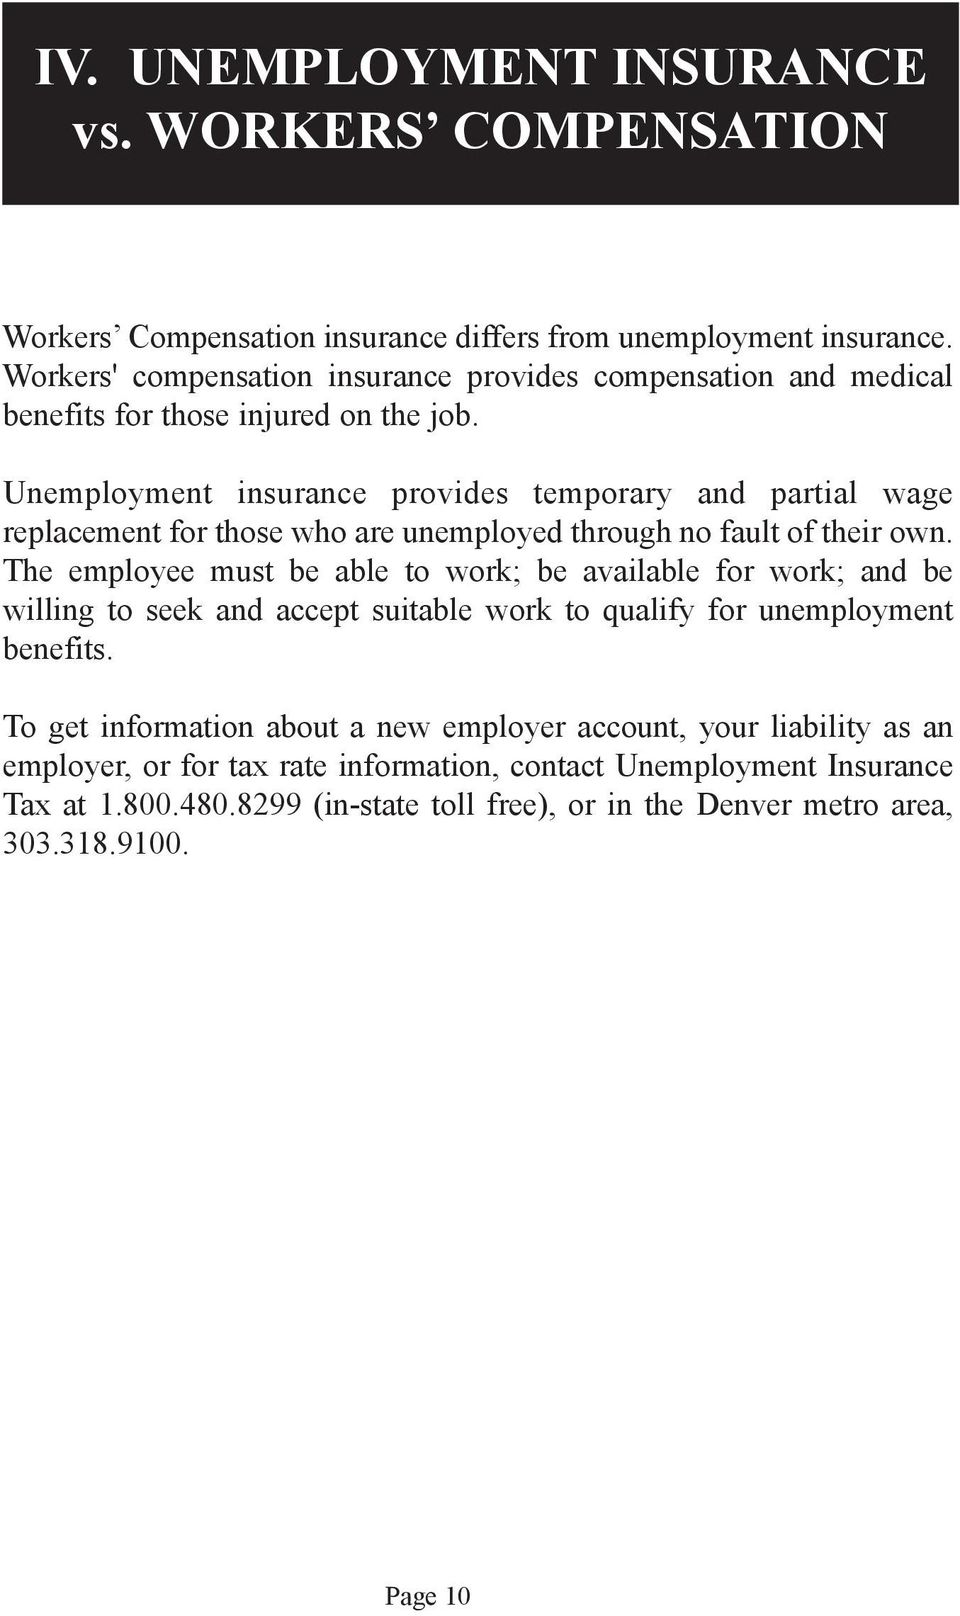 Unemployment insurance provides temporary and partial wage replacement for those who are unemployed through no fault of their own.